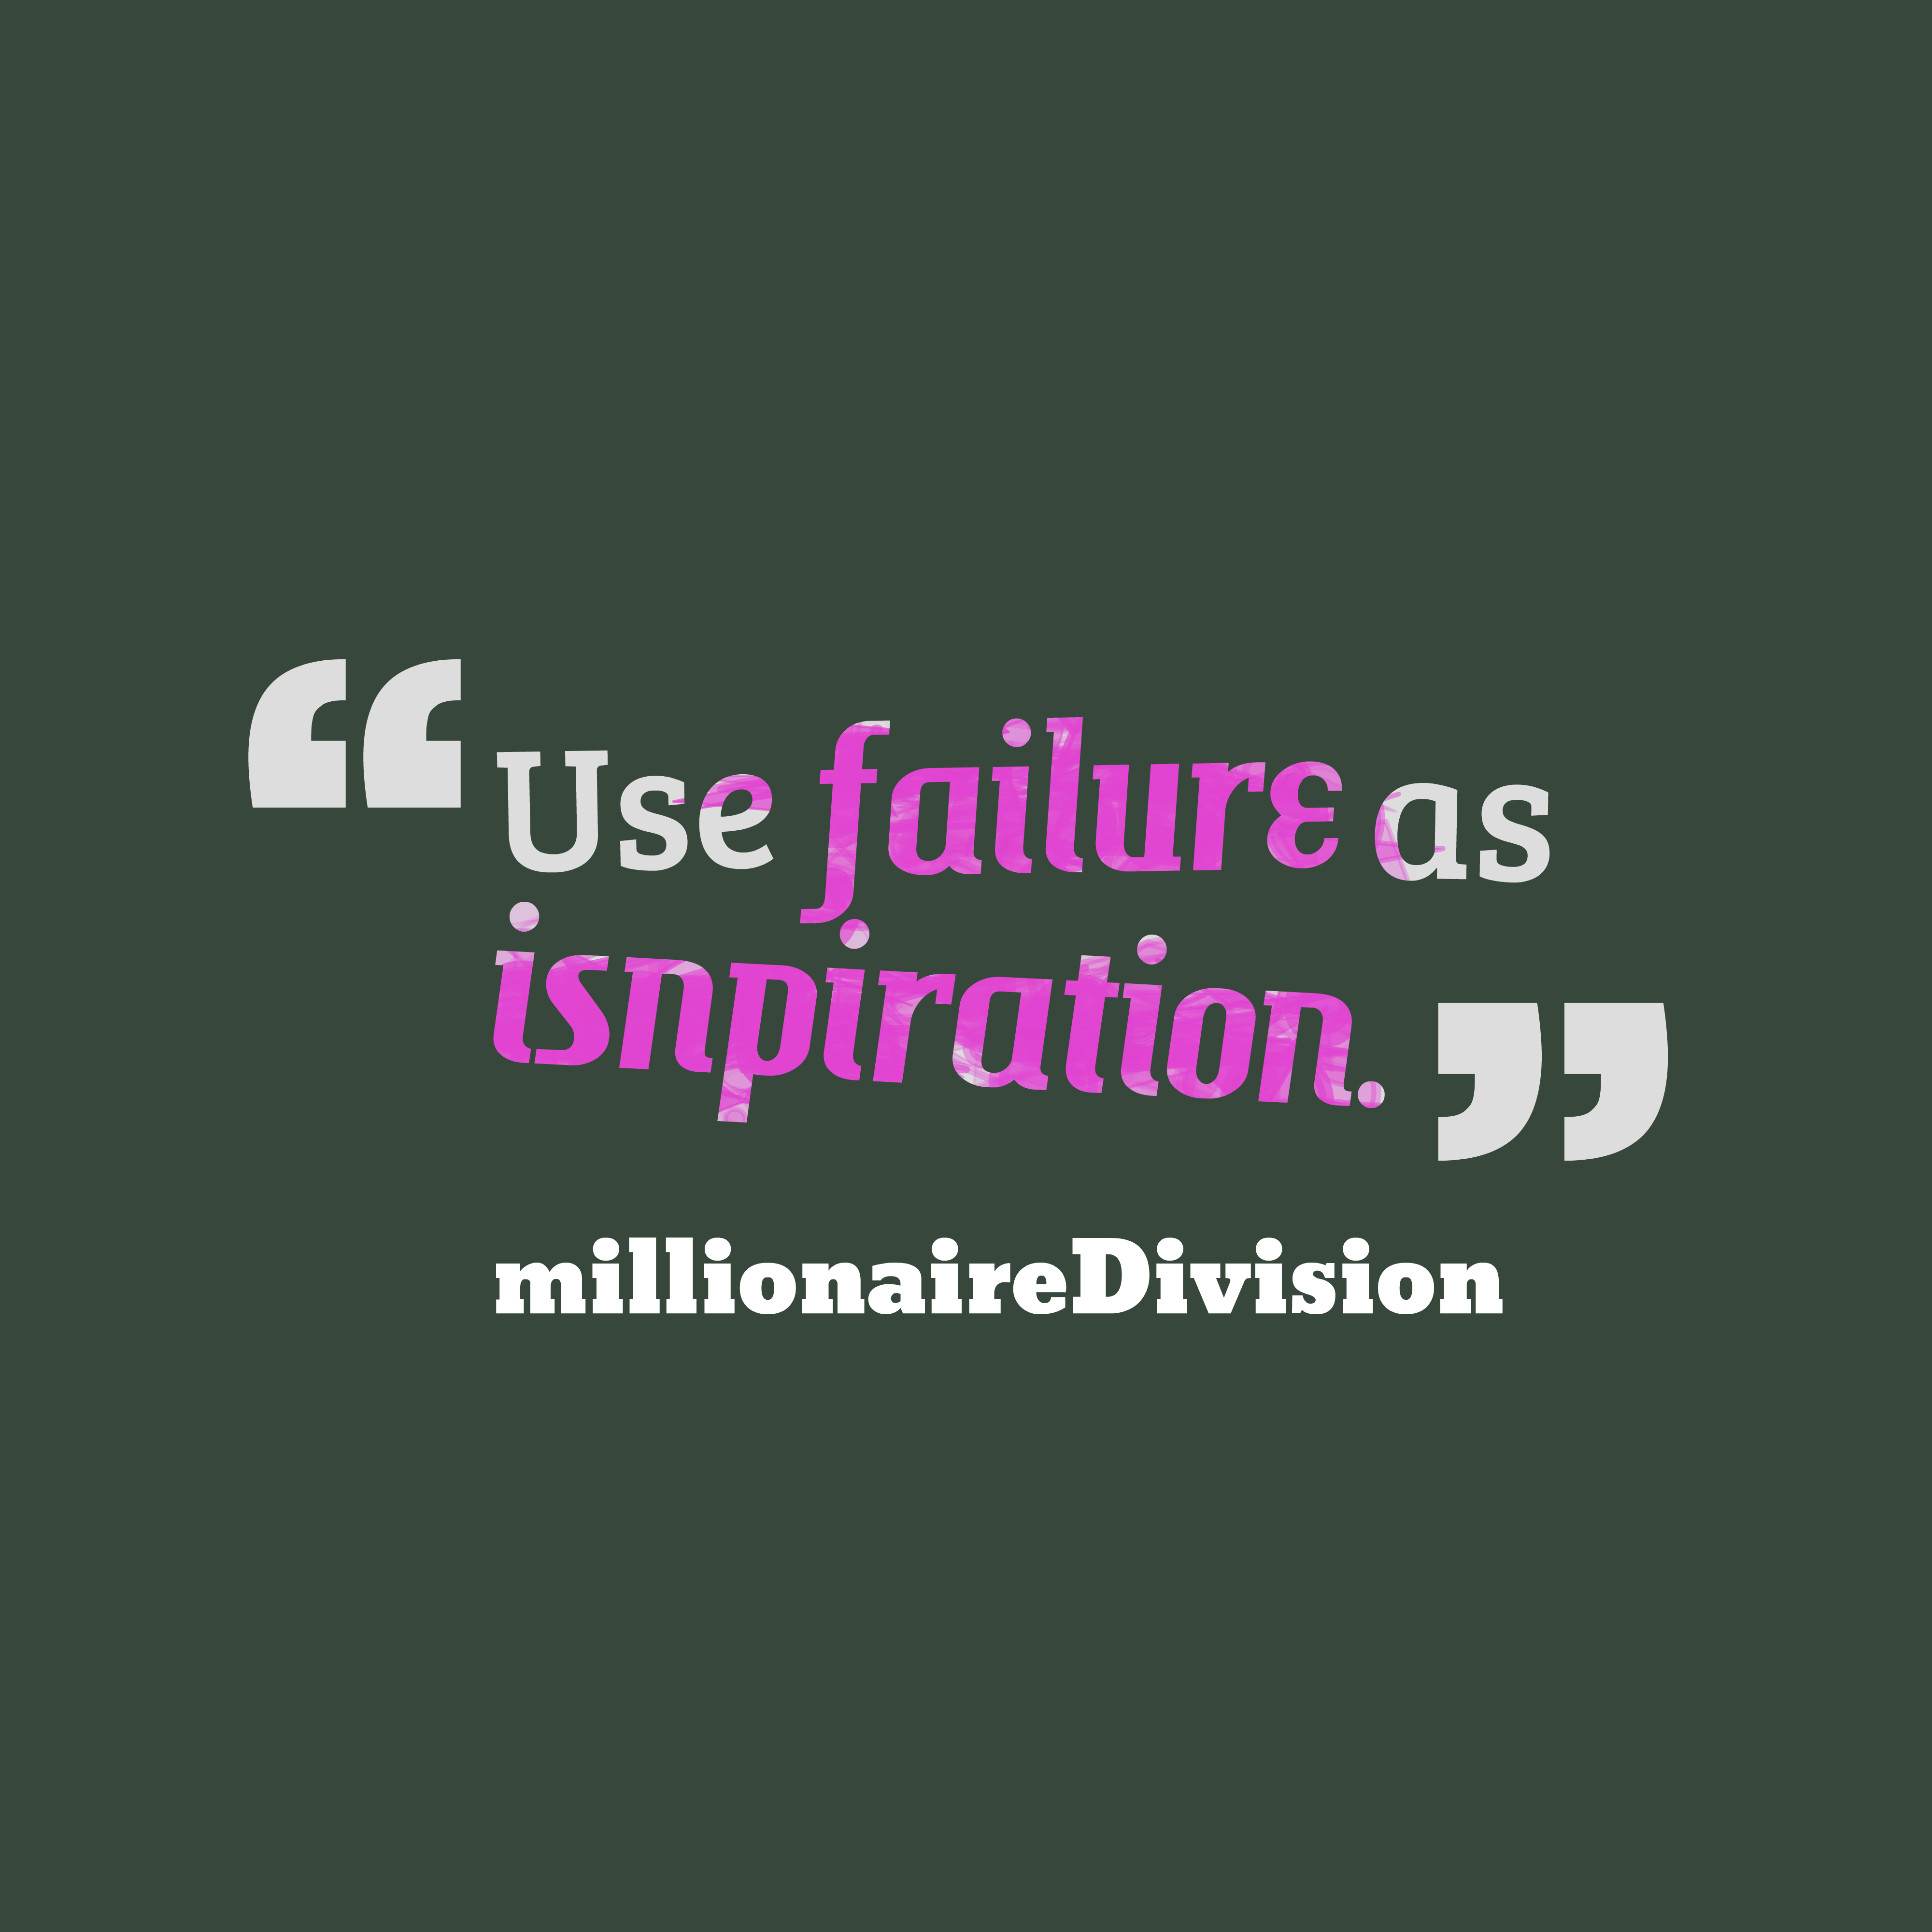 Quotes image of Use failure as isnpiration.